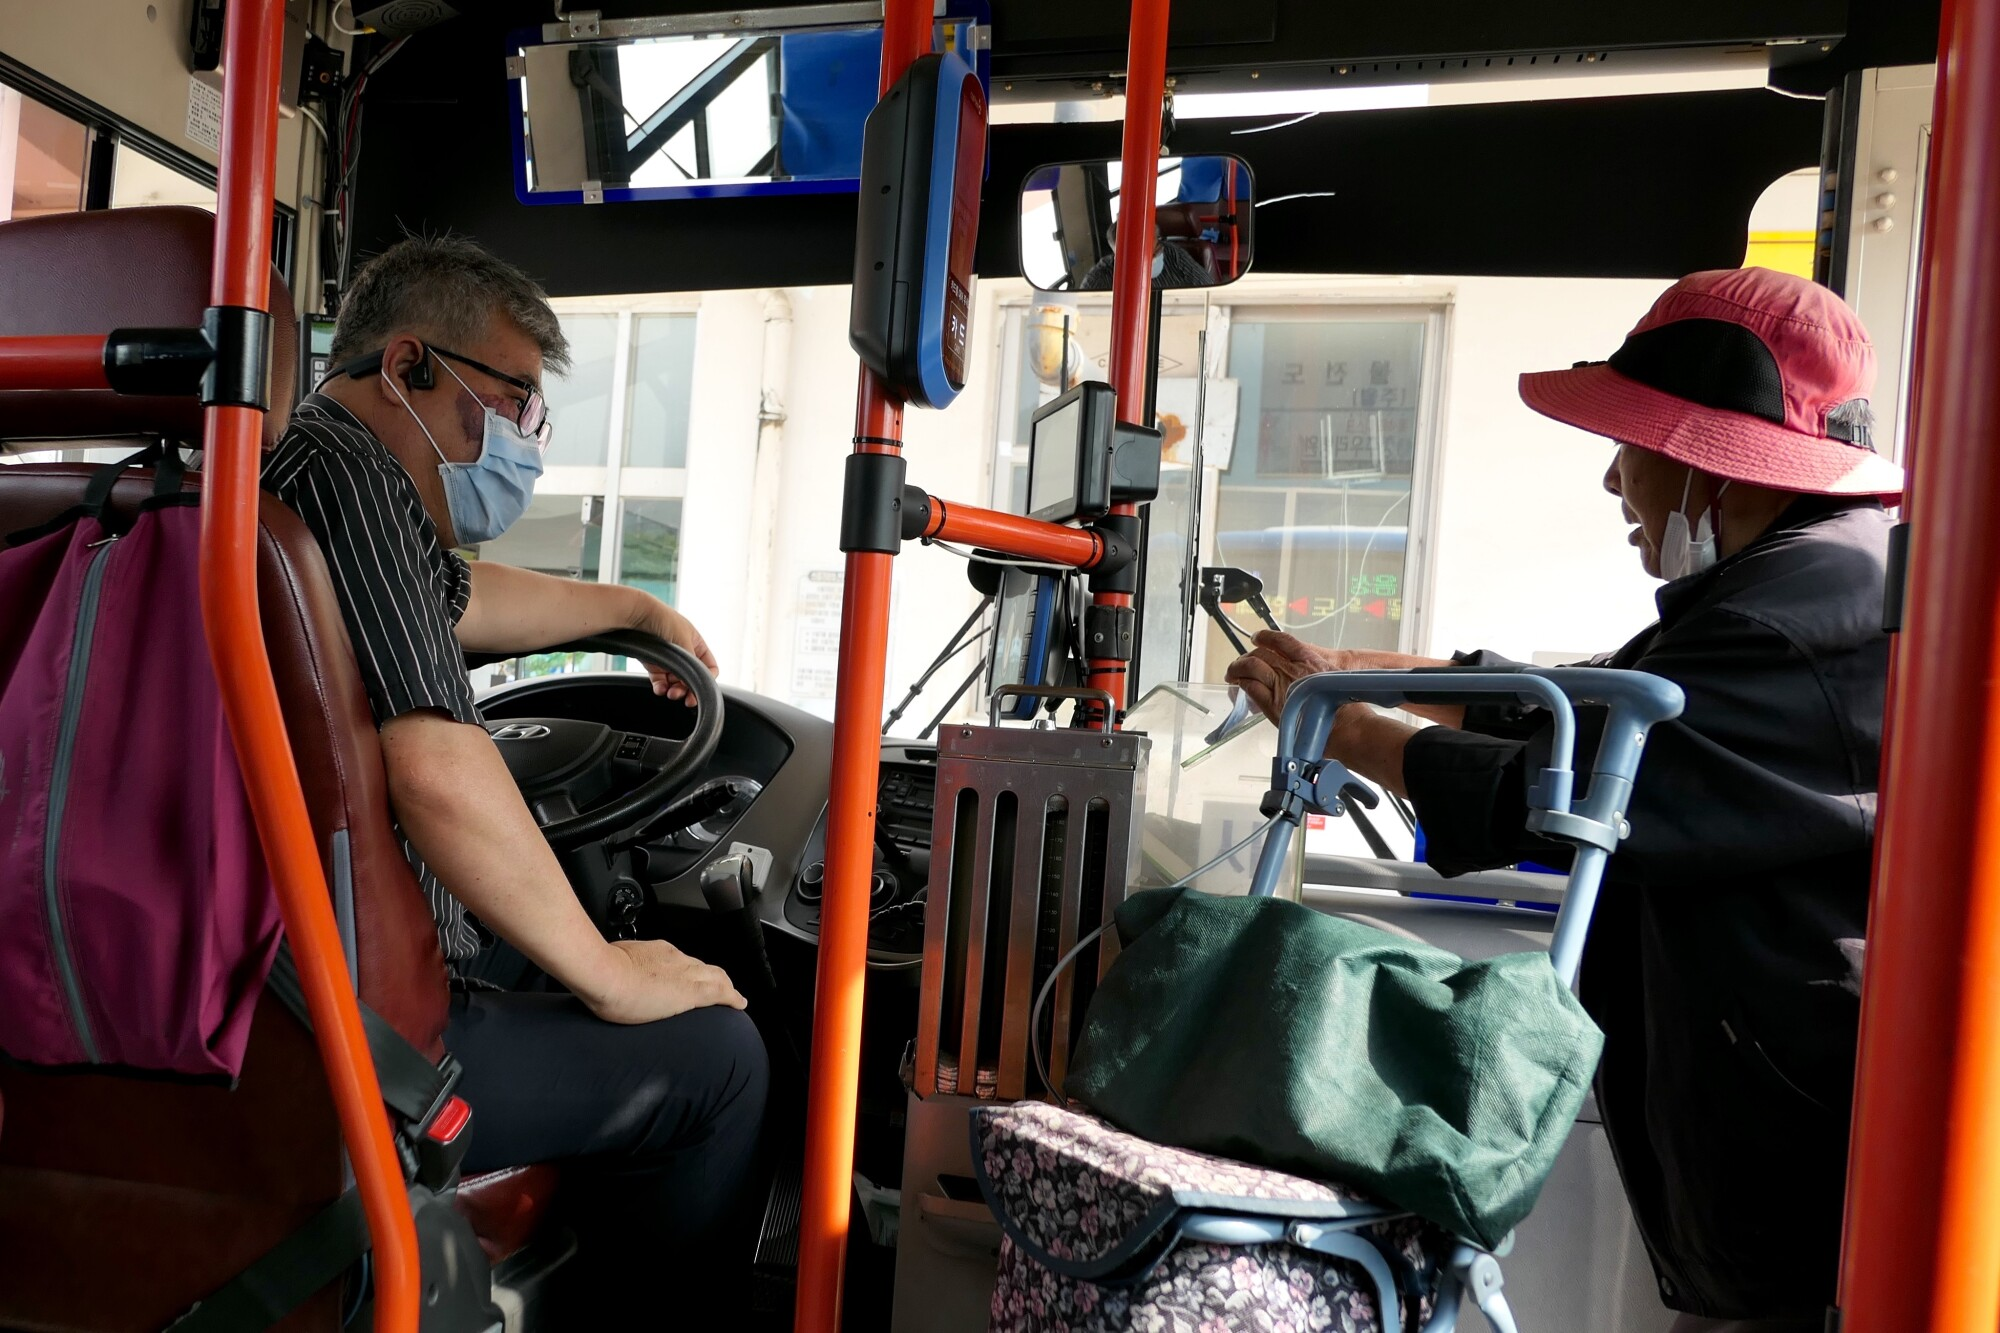 A man sits at the wheel of a bus and a woman pushing a cart gets on board.